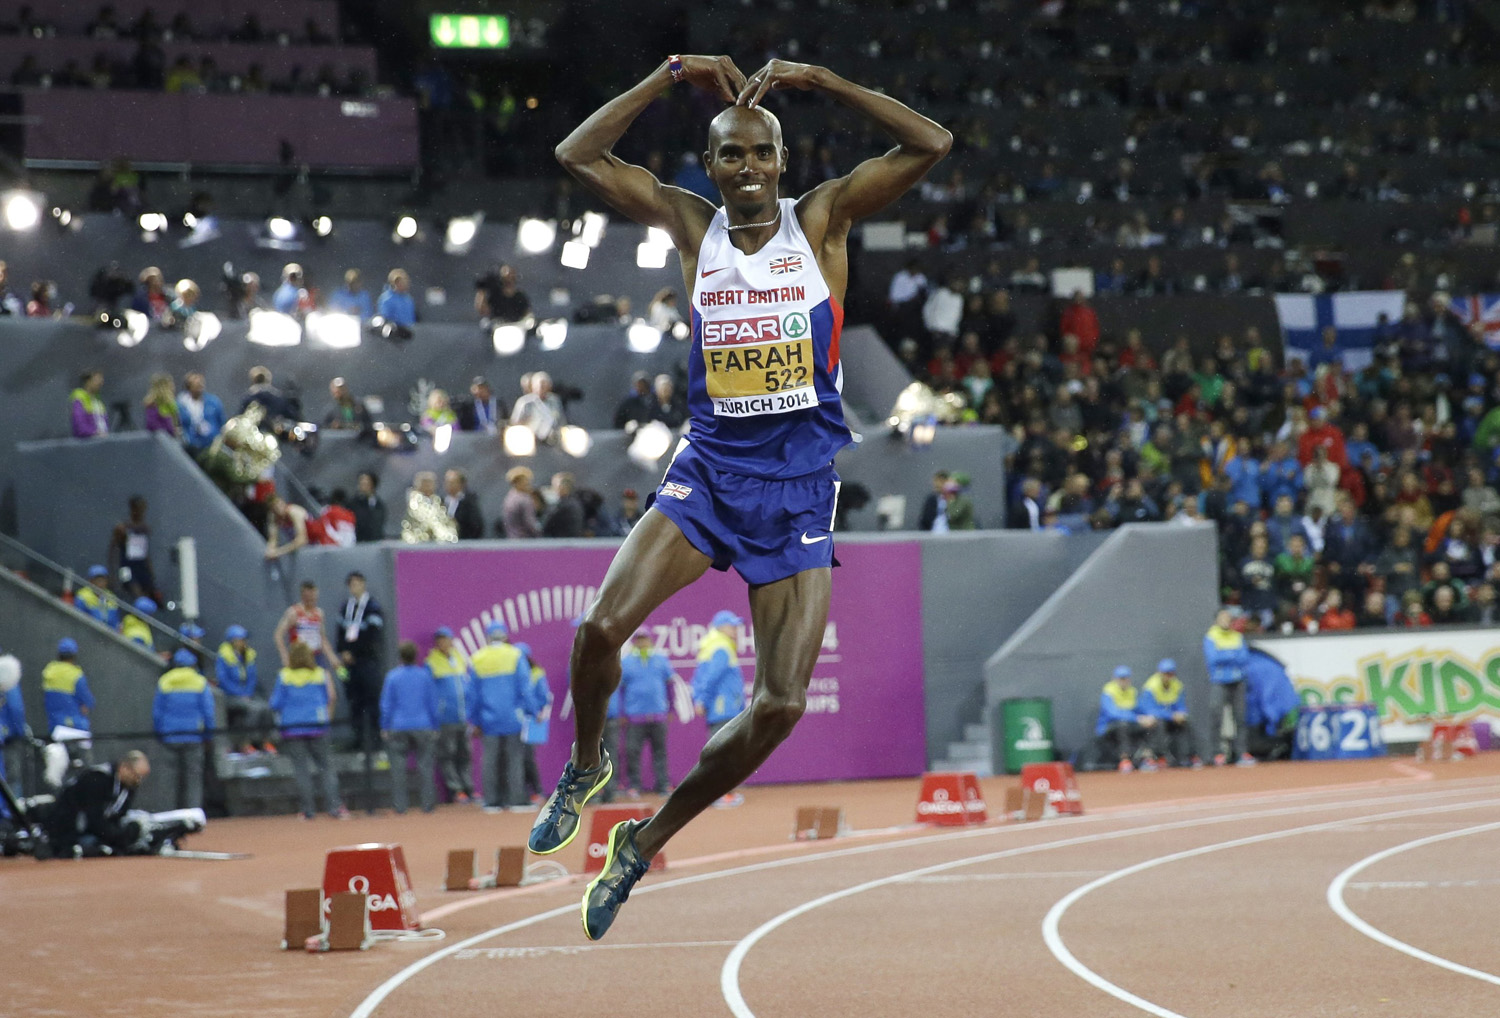 Britain's Mo Farah dances as he celebrates winning the gold medal in the men's 10,000m final during the European Athletics Championships in Zurich on August 13, 2014.